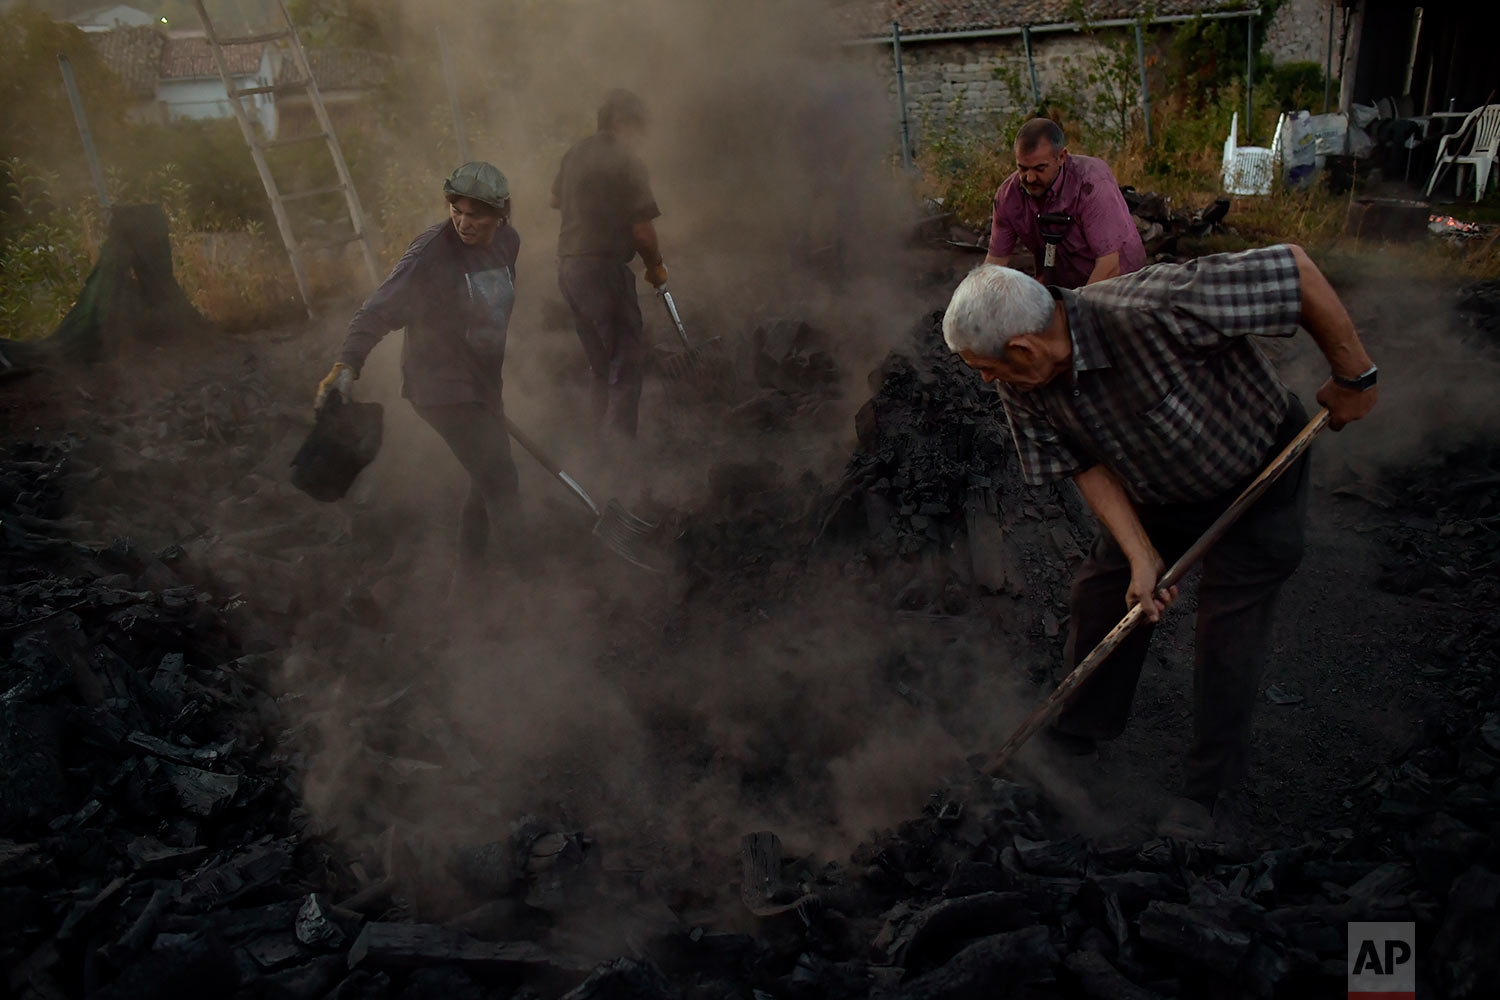 In this Tuesday, Sept.11, 2018 photo, workers extinguish the fire of burning tree trunks, as part of a process to produce traditional charcoal in Viloria, northern Spain. (AP Photo/Alvaro Barrientos)